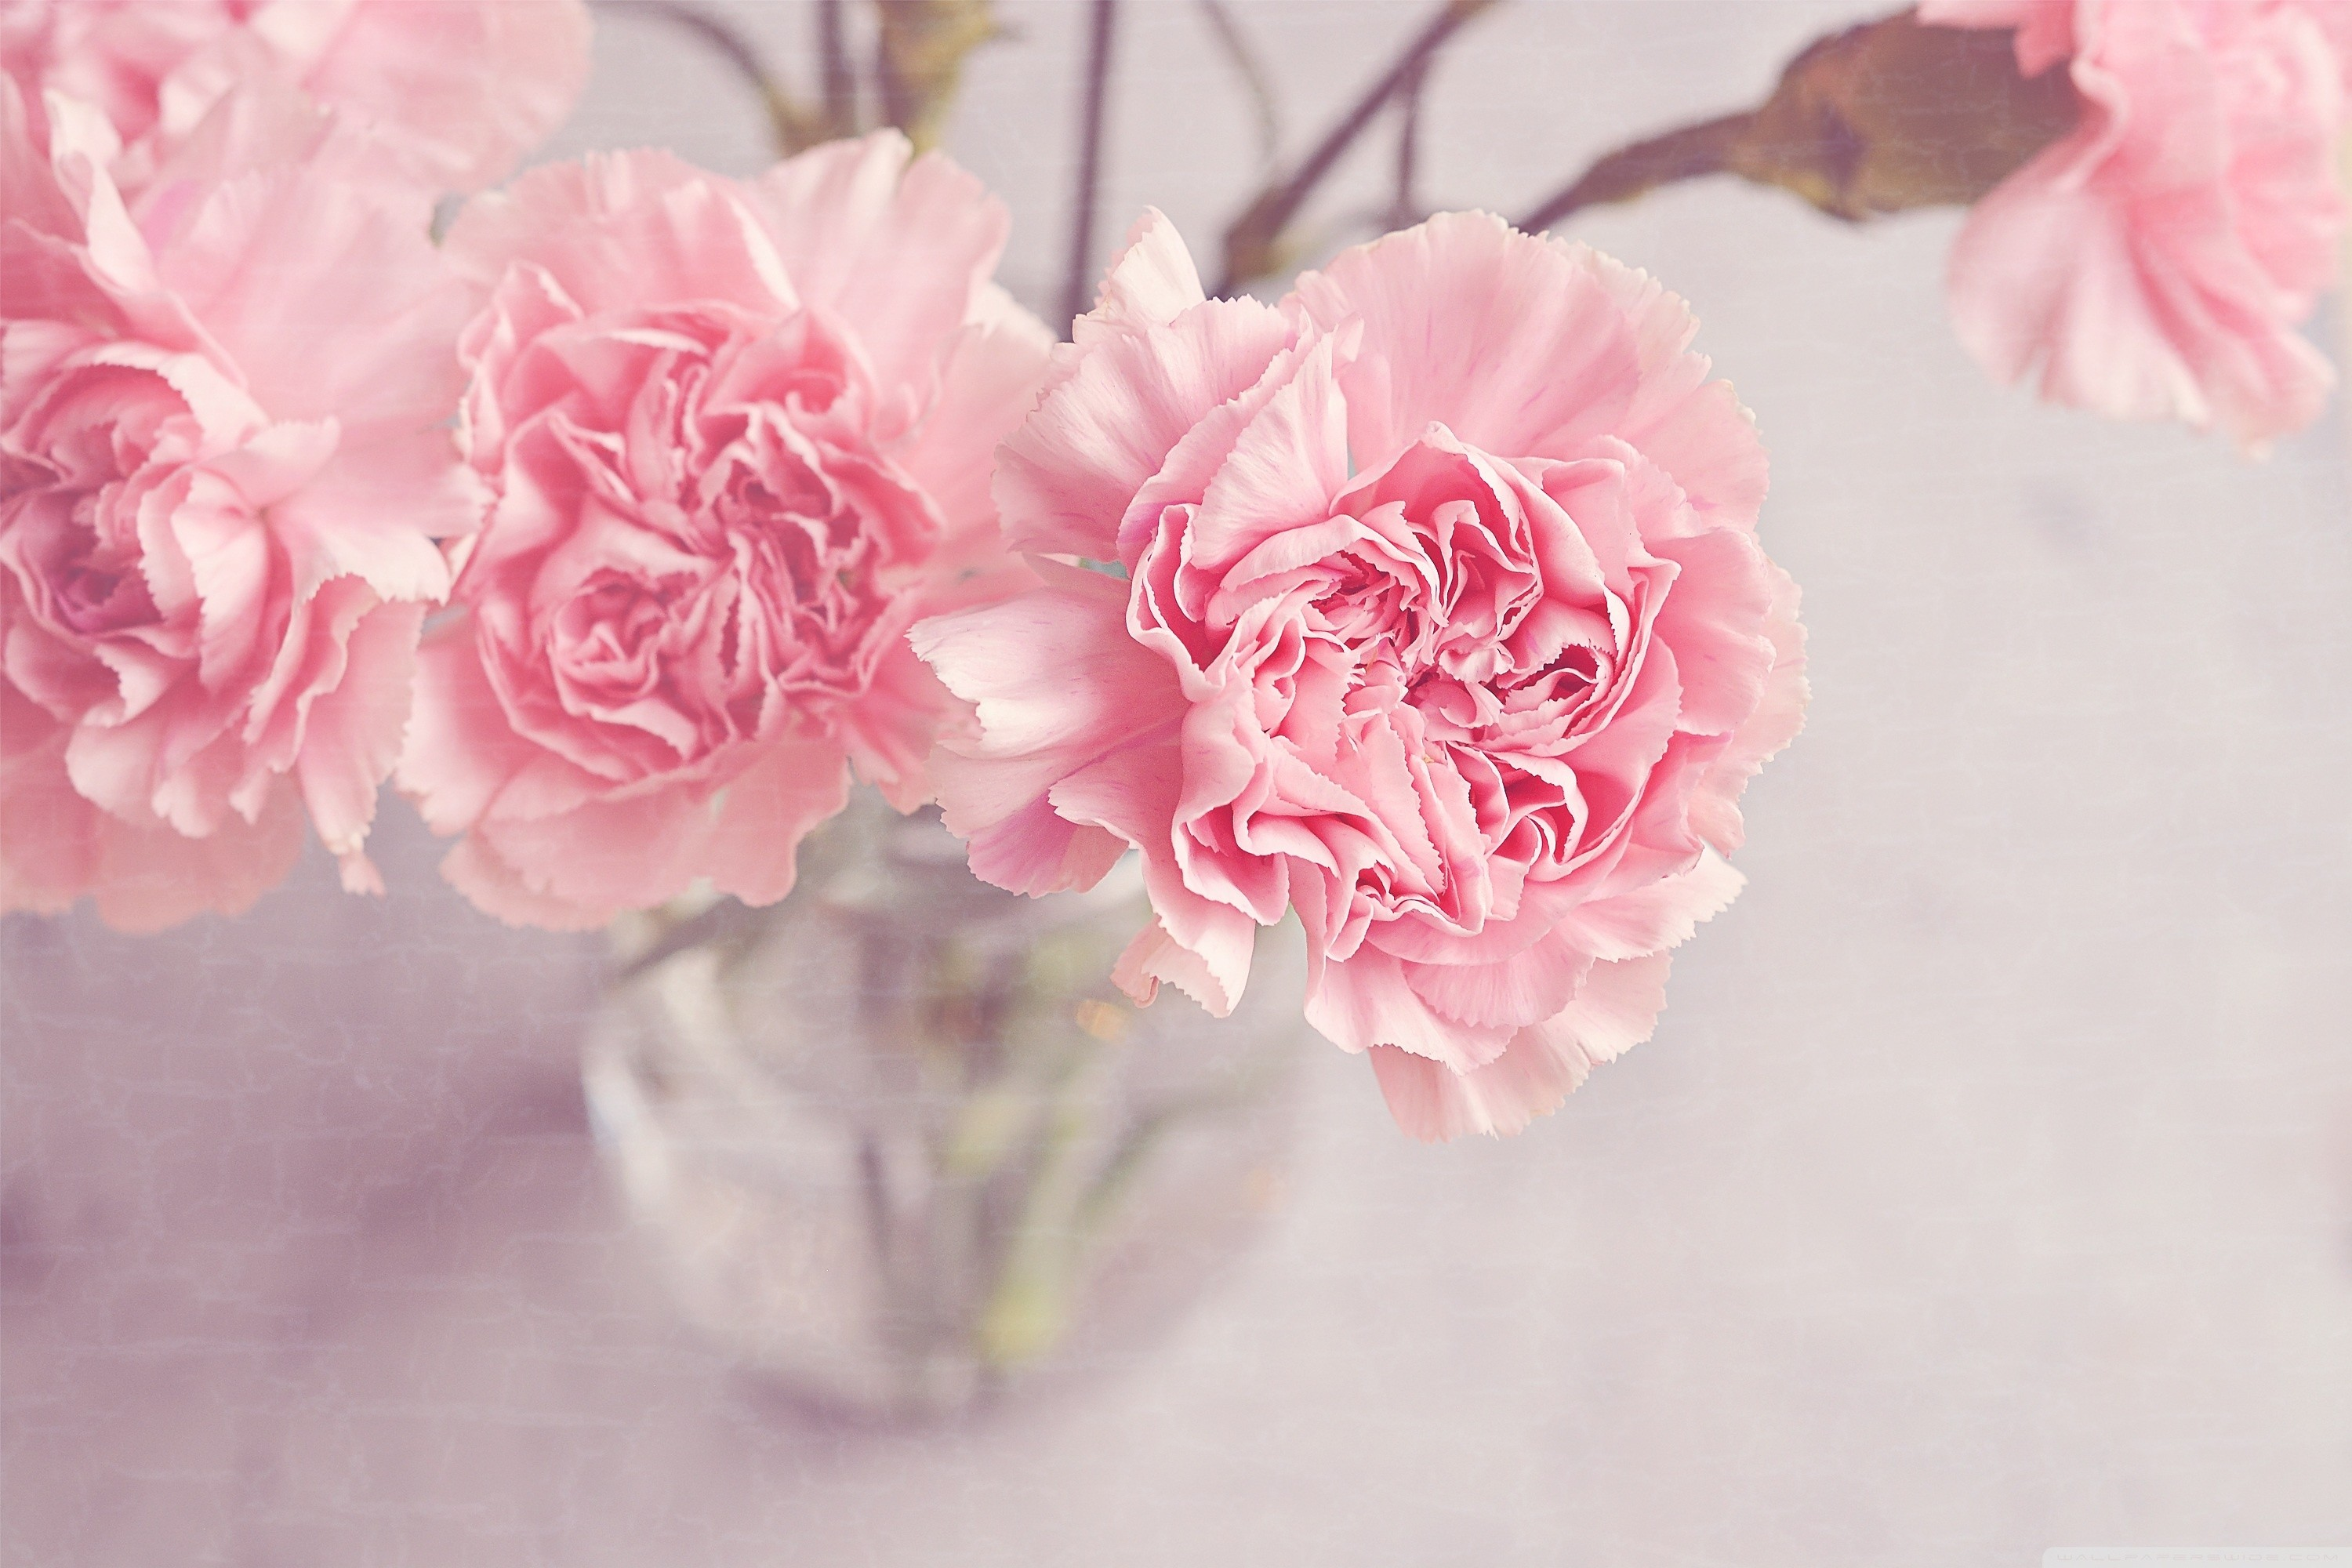 light_pink_carnations_flowers_in_a_vase-wallpaper.  light_pink_carnations_flowers_in_a_vase-wallpaper